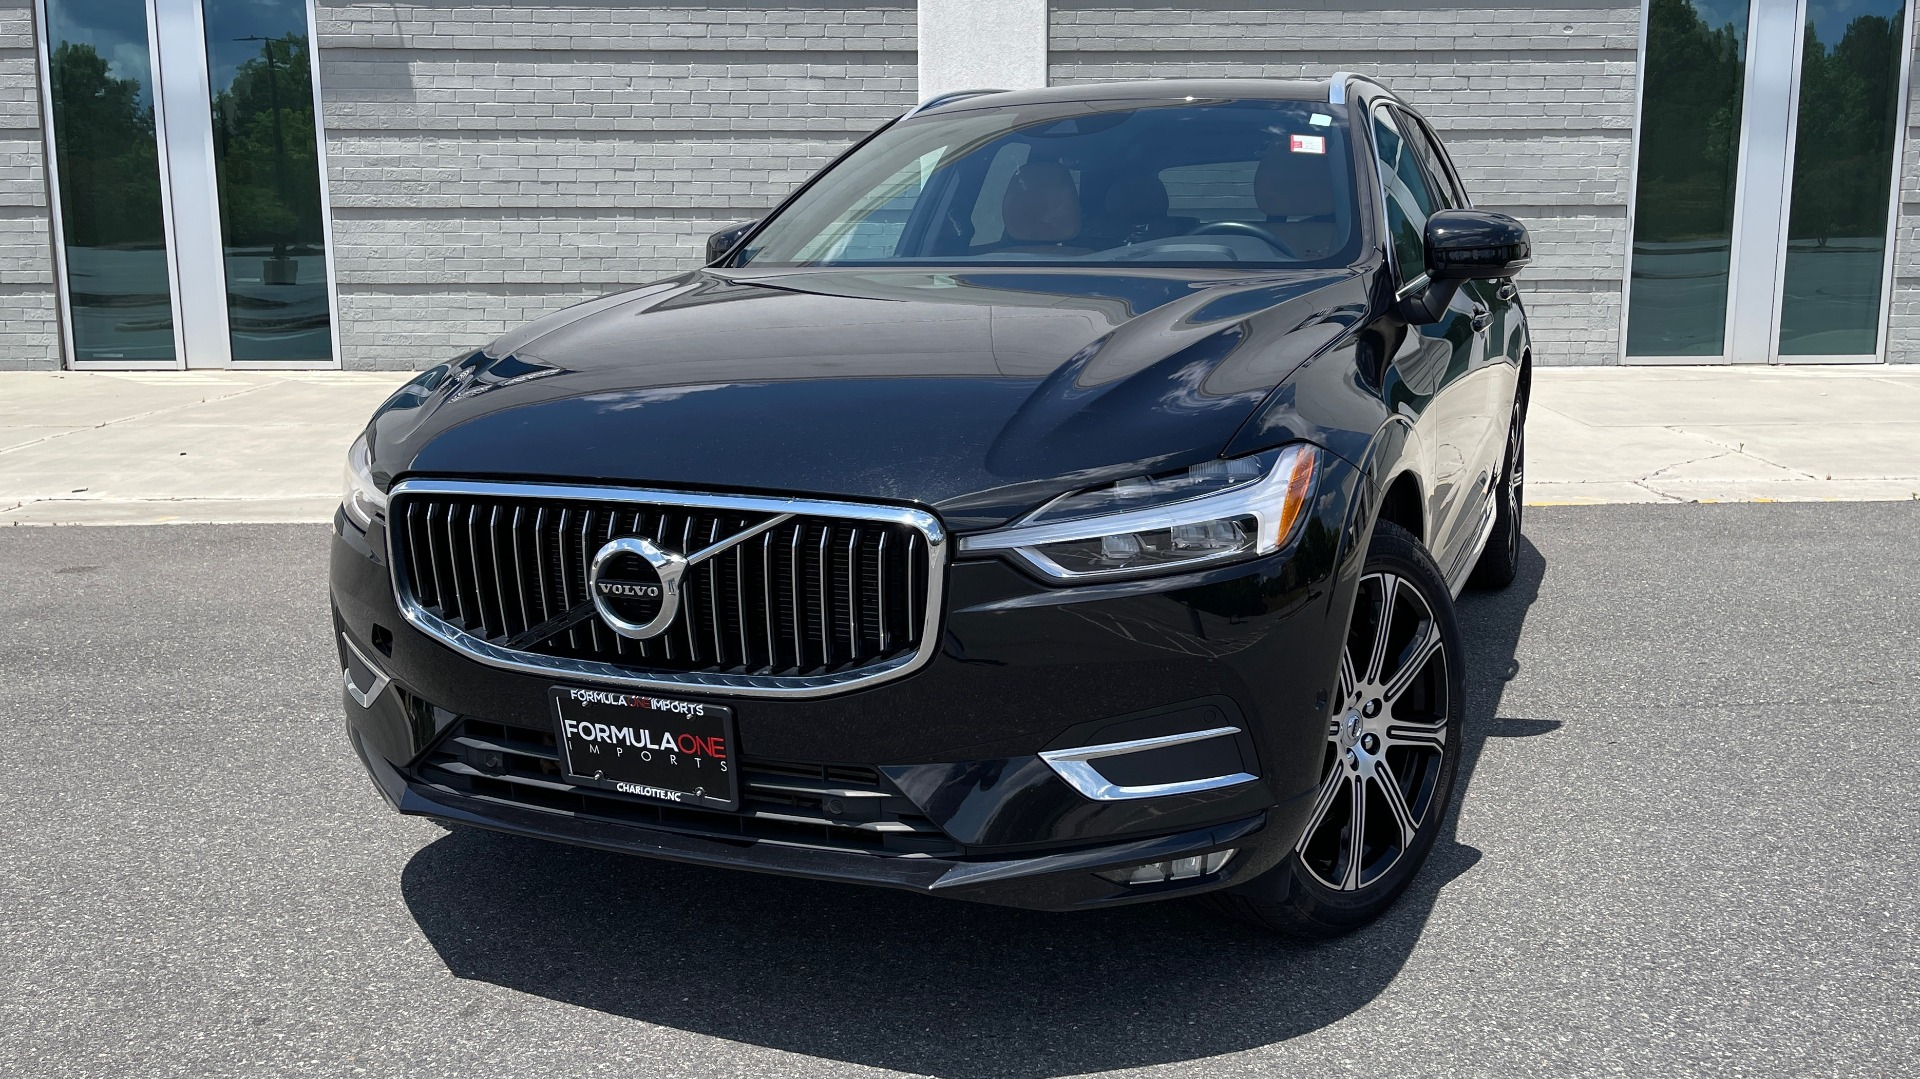 Used 2018 Volvo XC60 INSCRIPTION 2.0L TURBO SUV / AWD / NAV / SUNROOF / REARVIEW for sale $38,795 at Formula Imports in Charlotte NC 28227 8